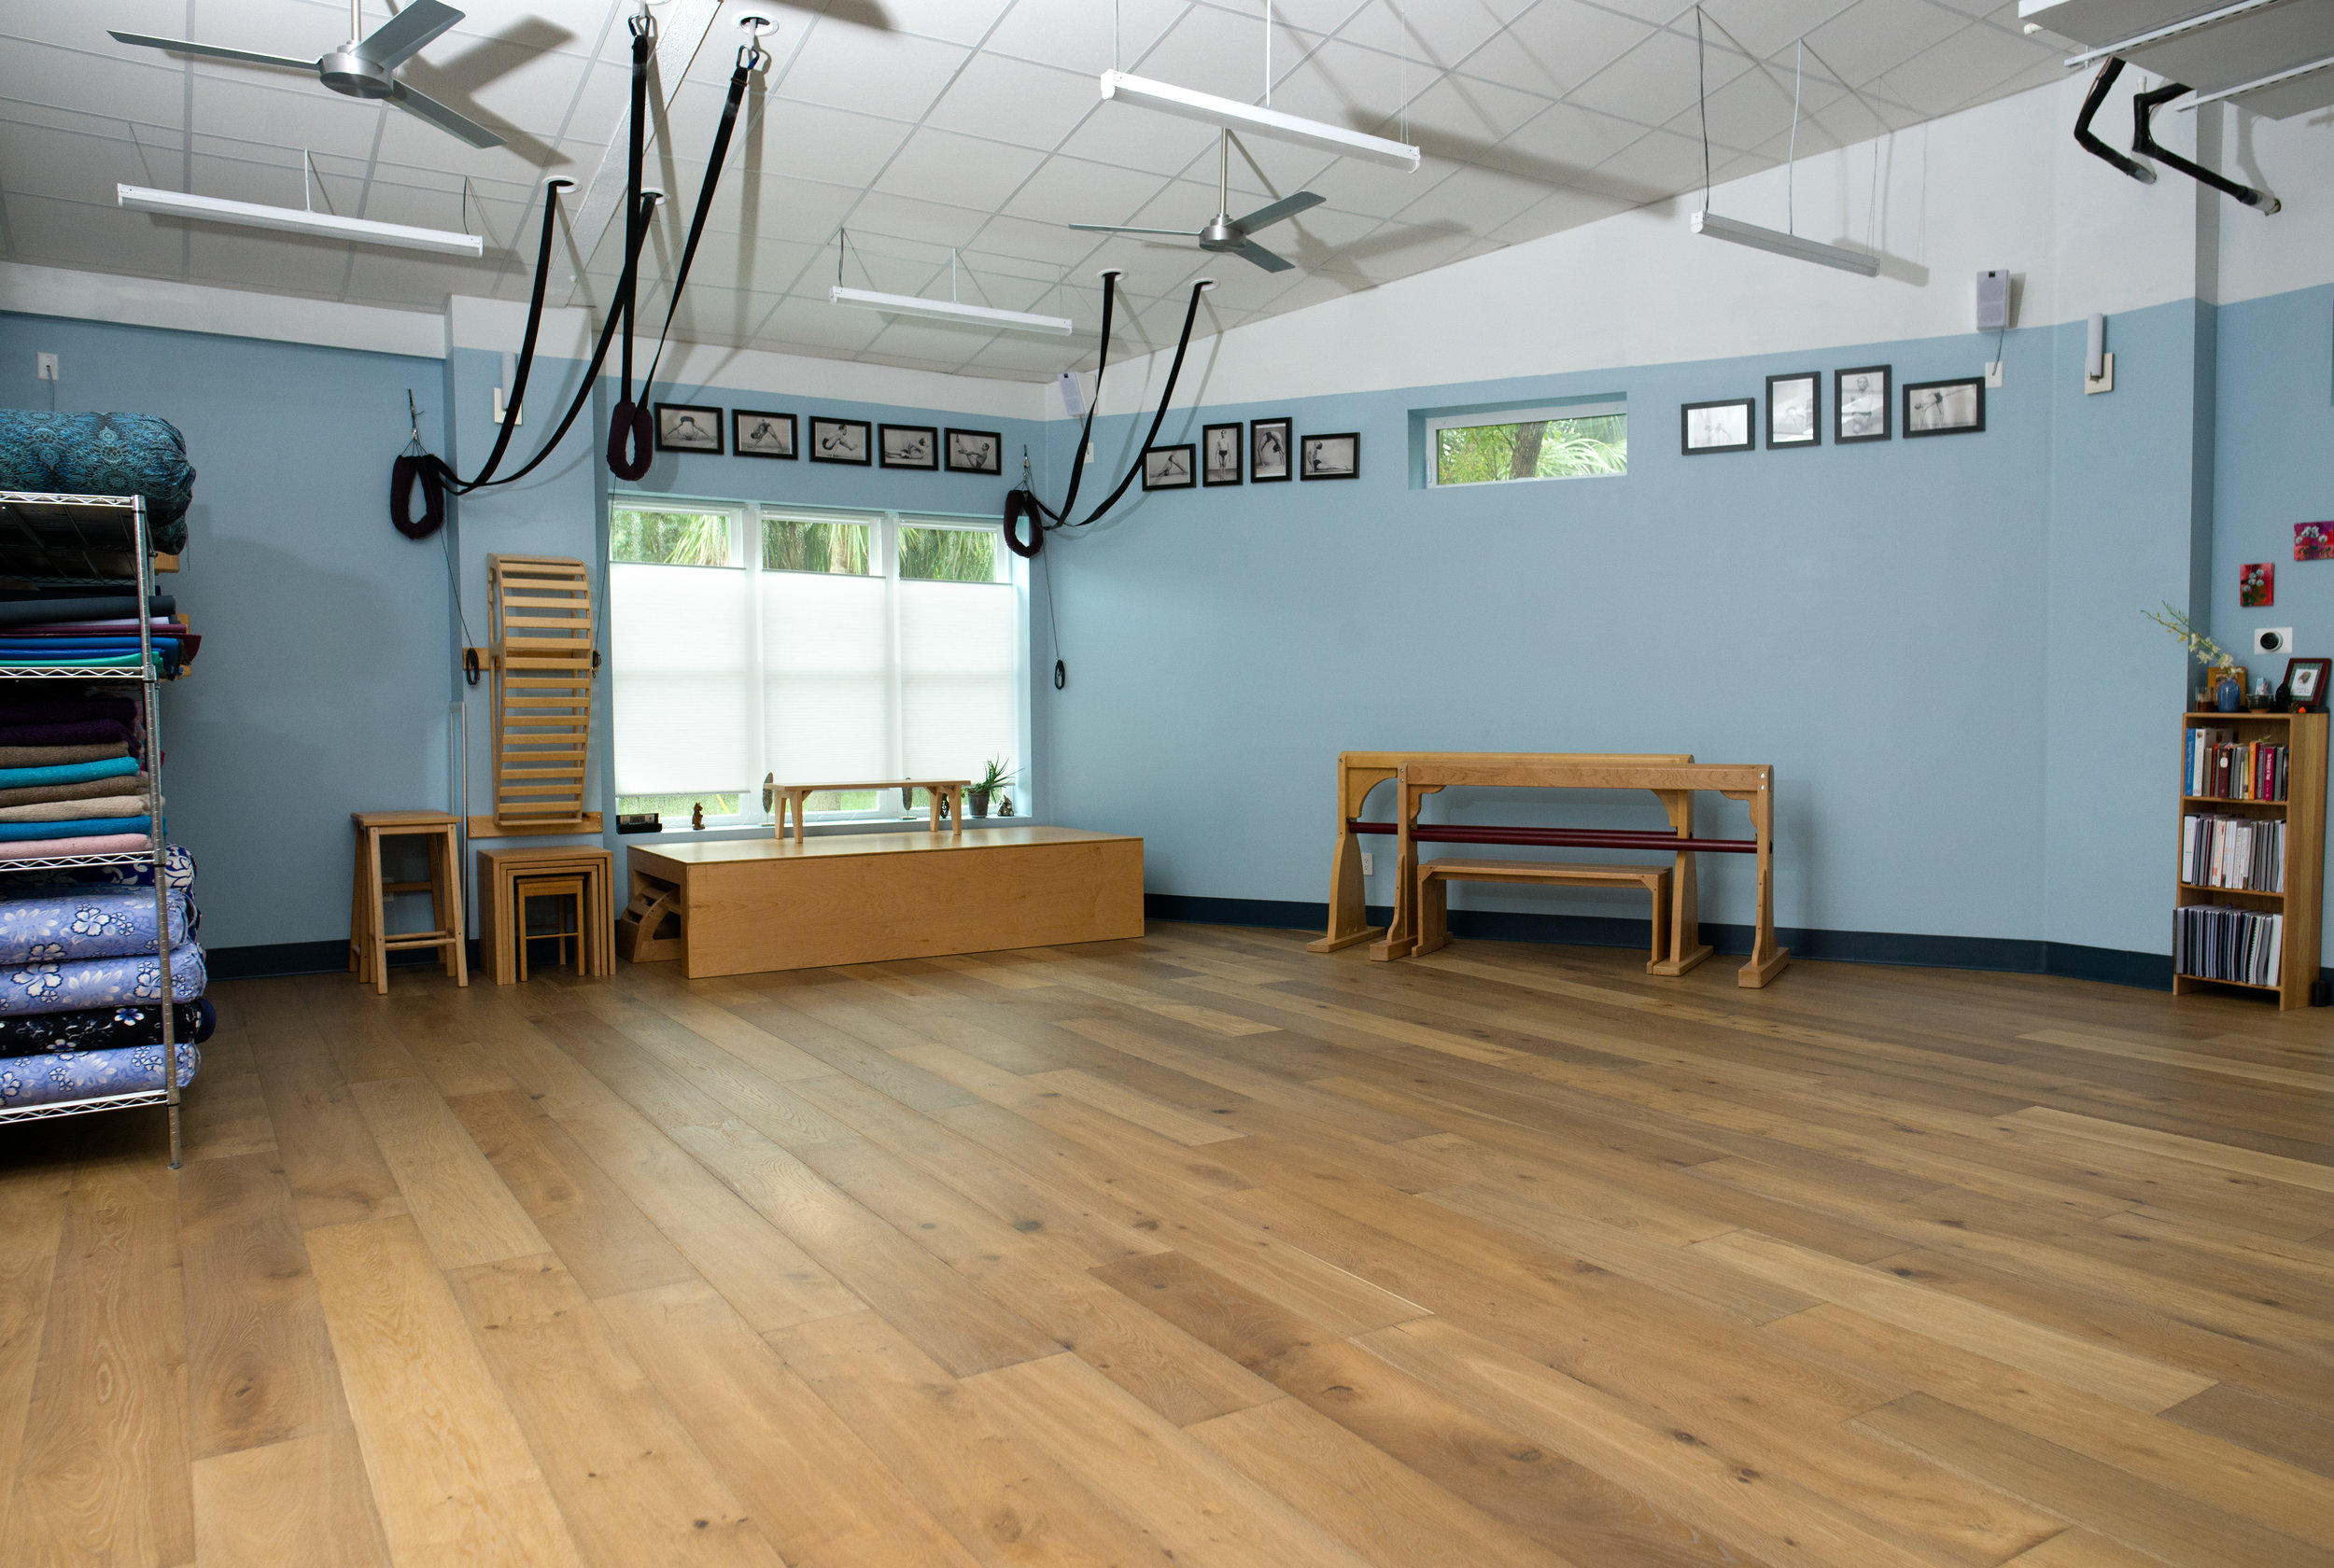 We are the most well equipped yoga studio in all of Northeast Florida